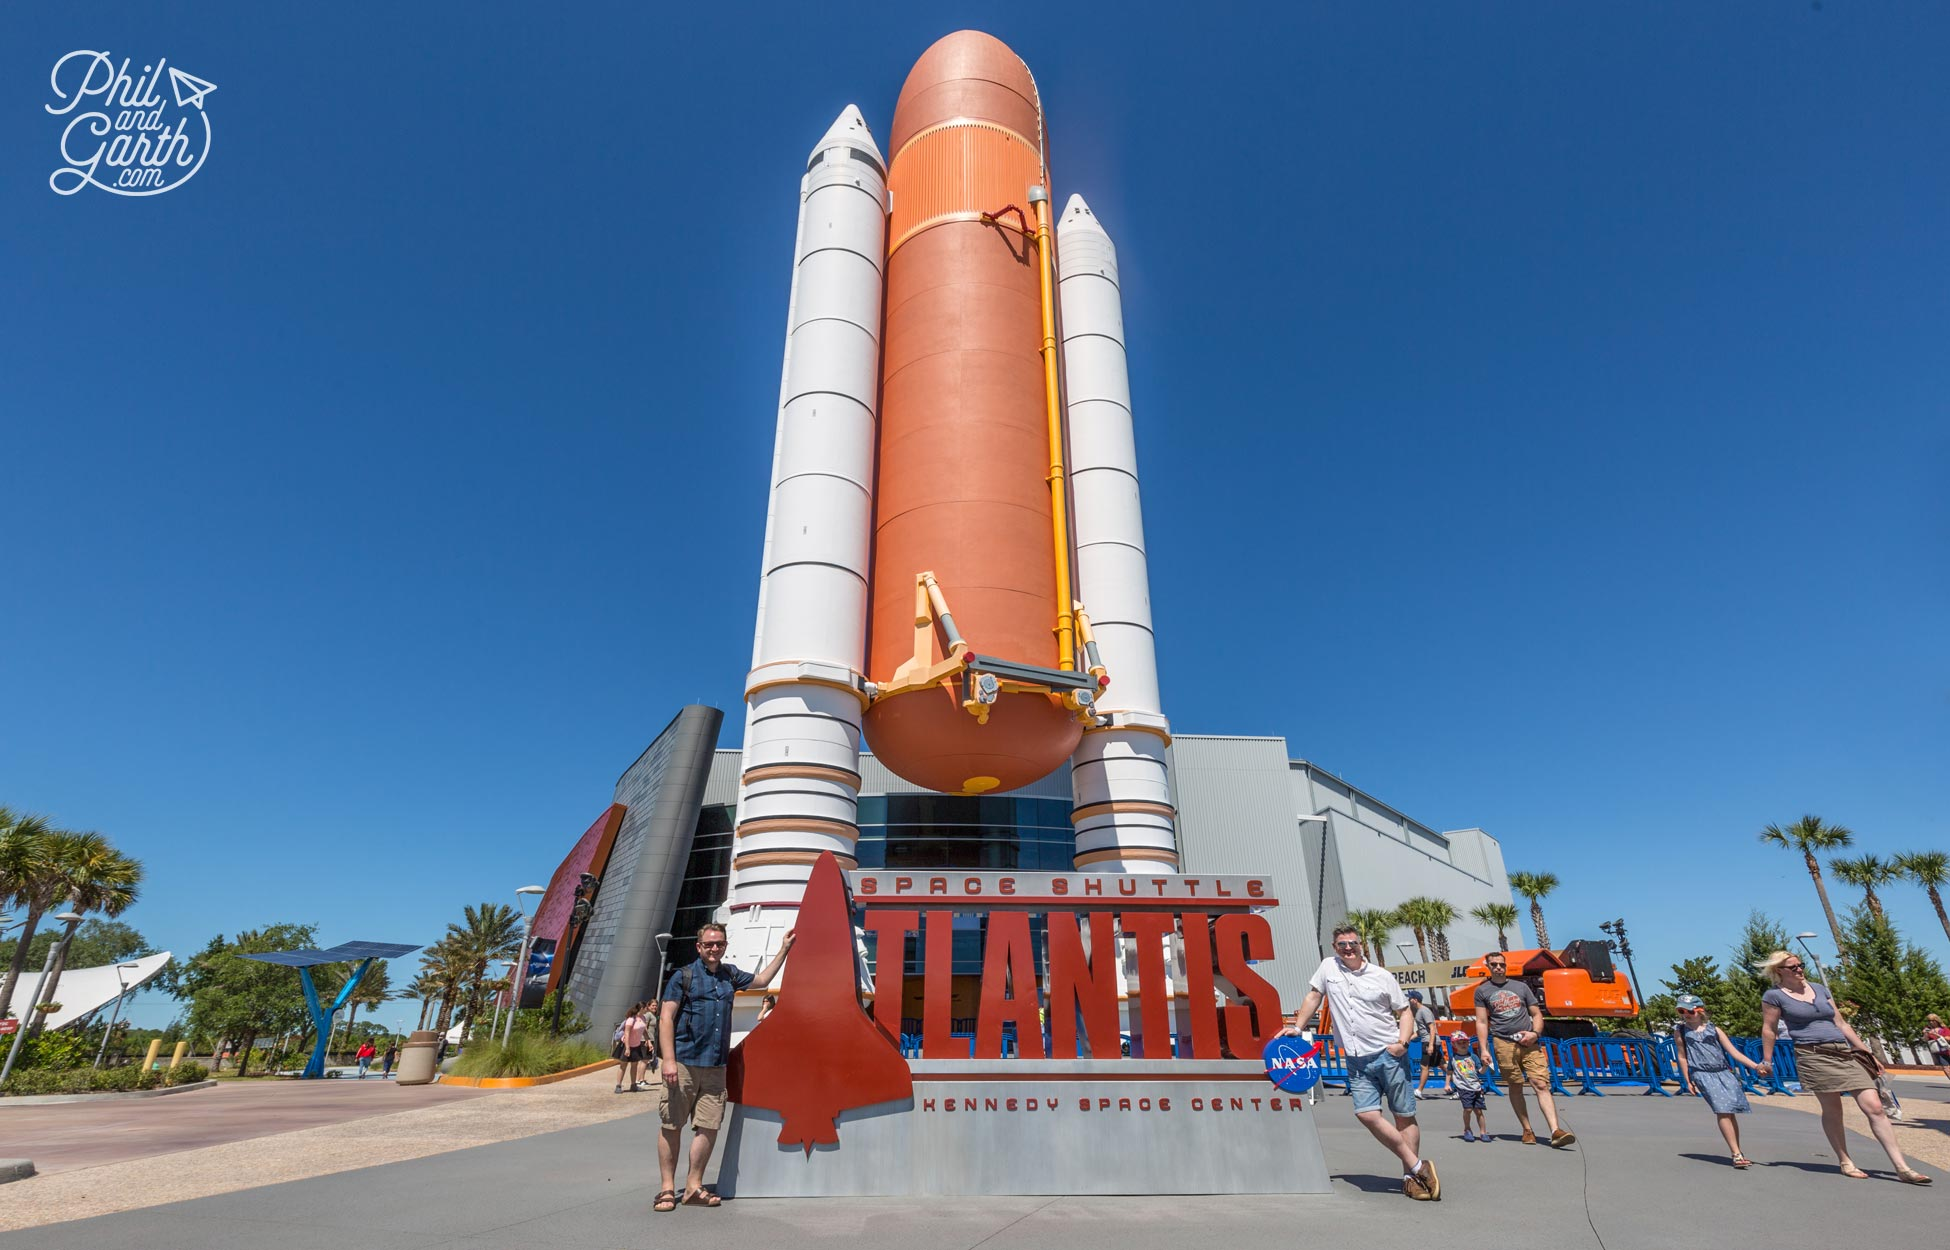 Garth and Phil outside the Space Shuttle Atlantis building